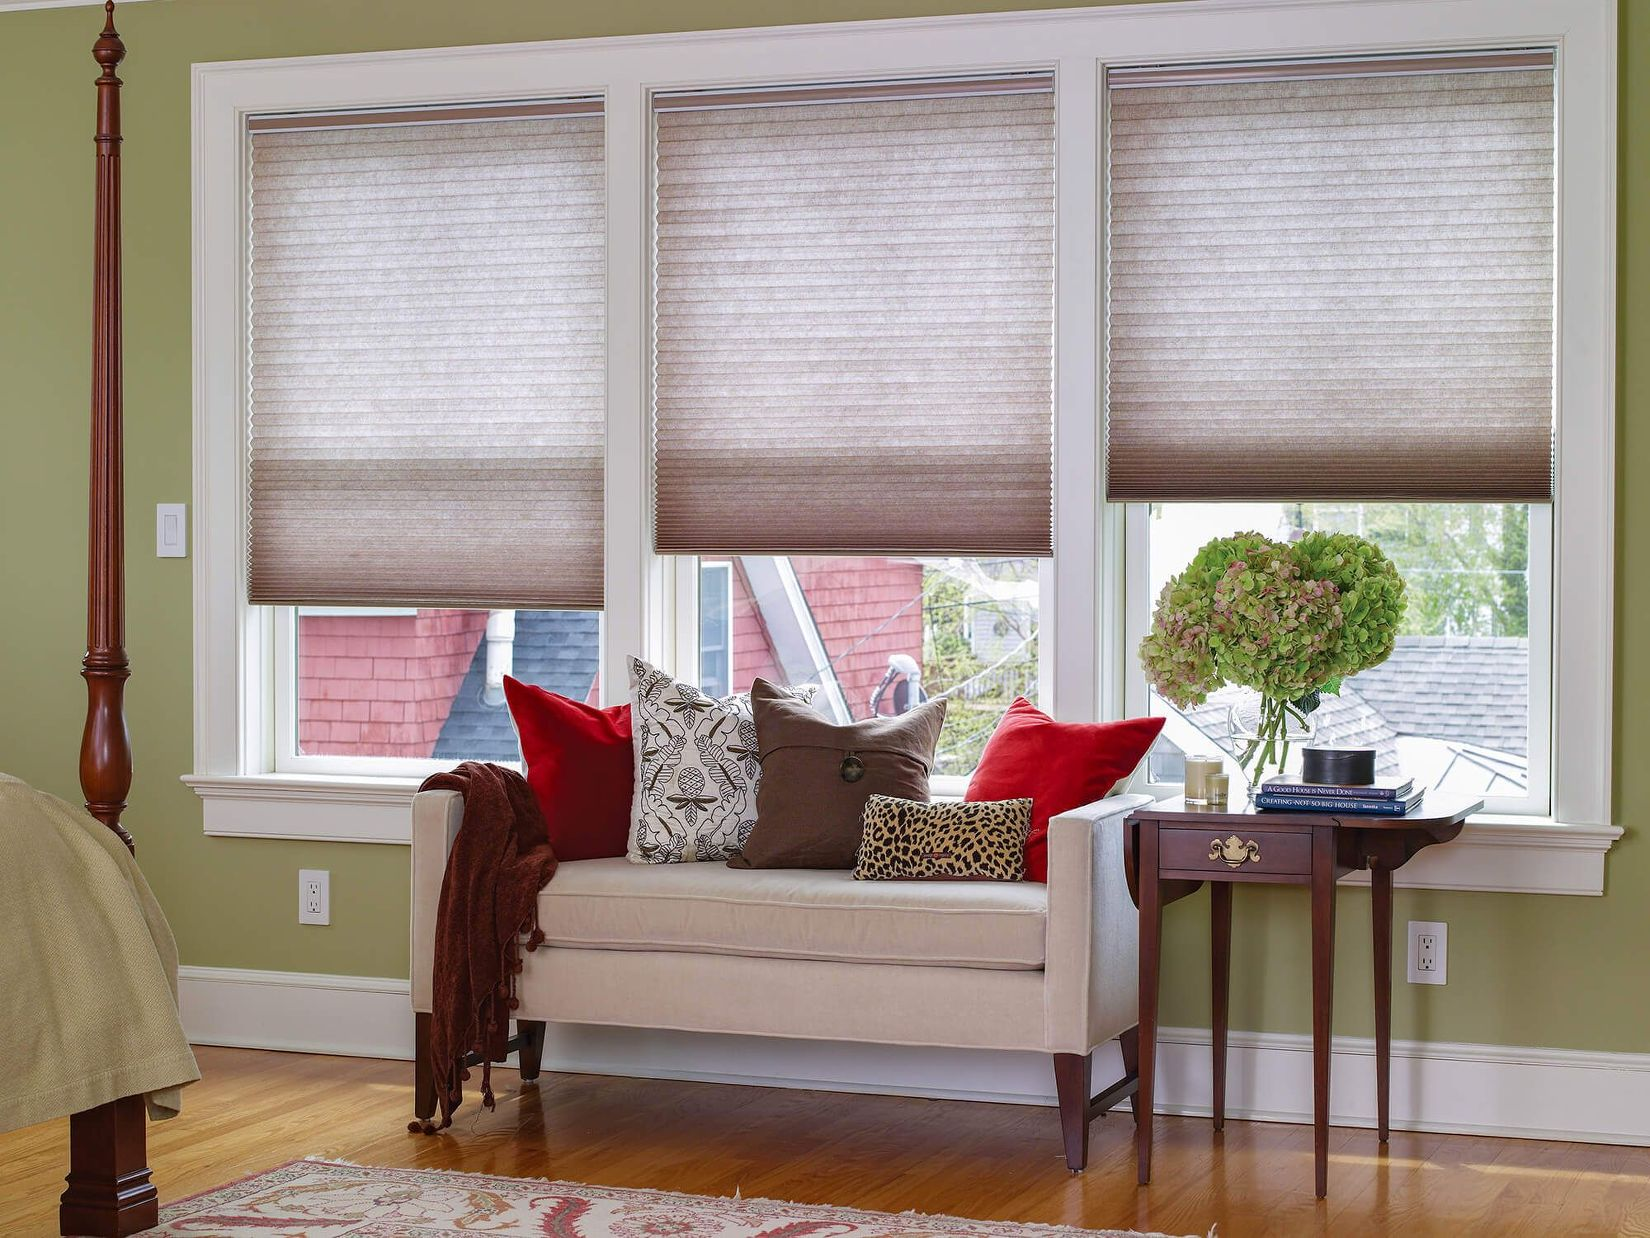 honeycomb shades cellular shades has become a popular window treatment option for bedrooms PZZLIVK